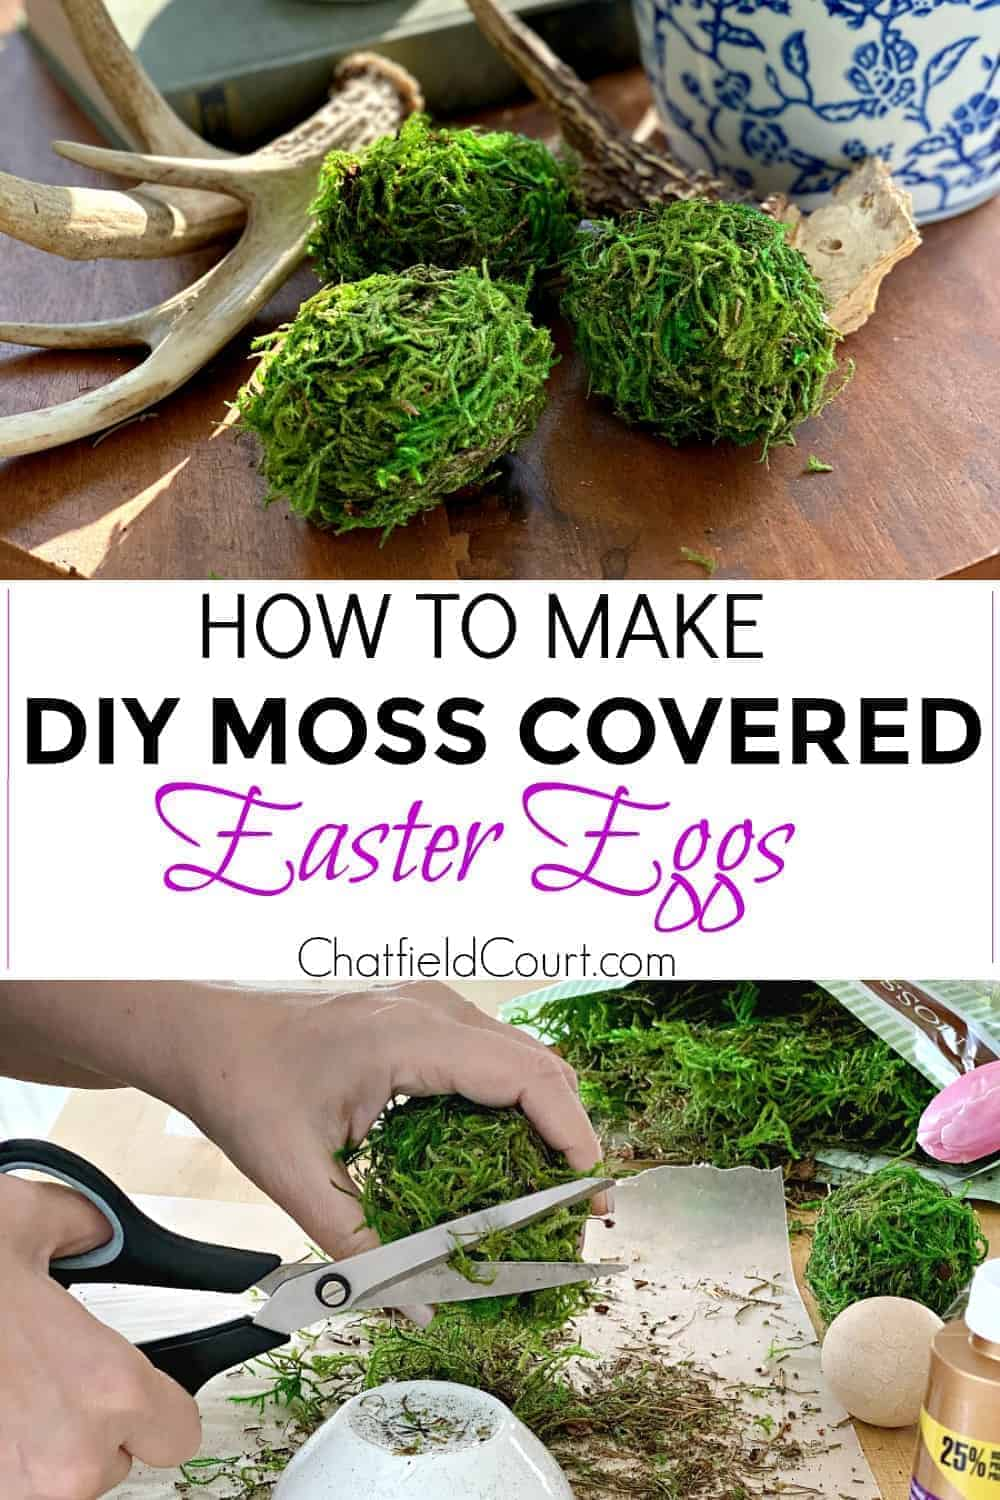 collage making moss covered Easter eggs and large graphic